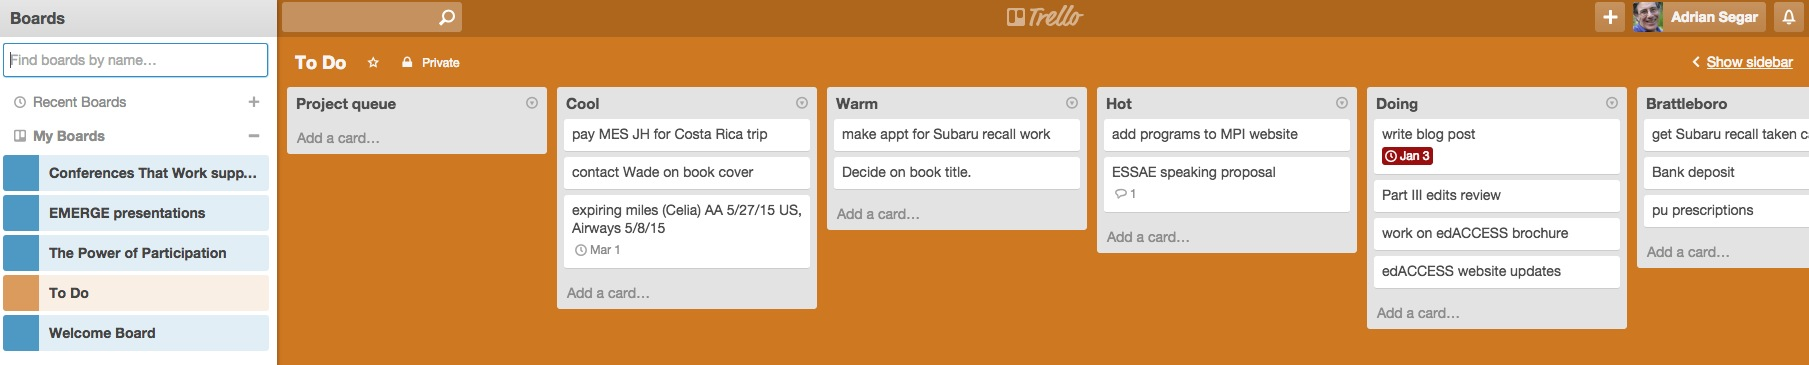 Trello To Do